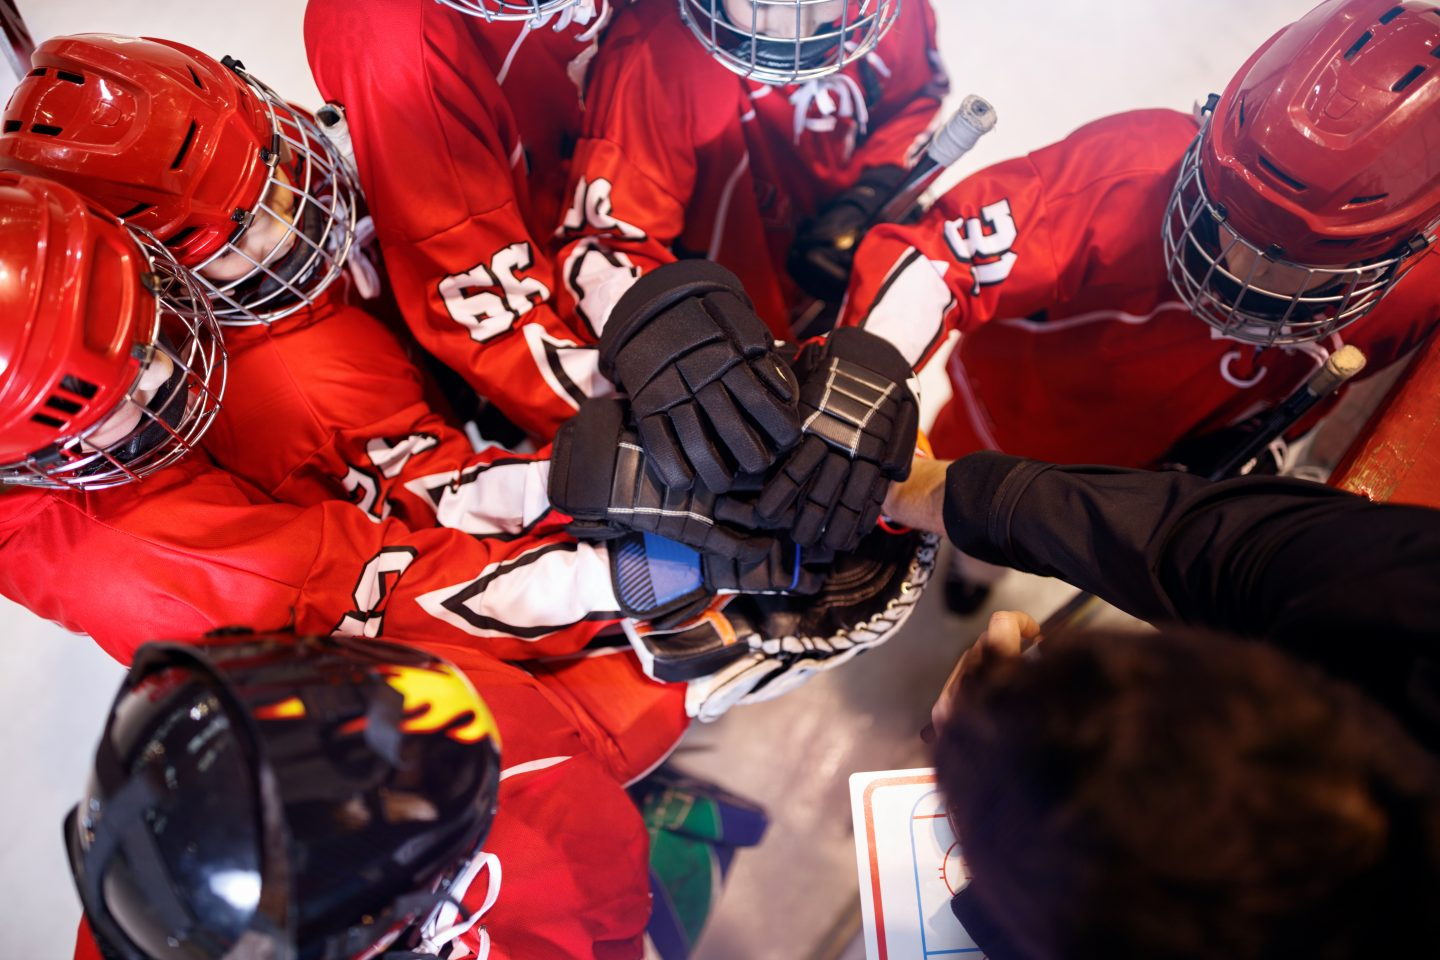 Hockey team huddle. | Coaching